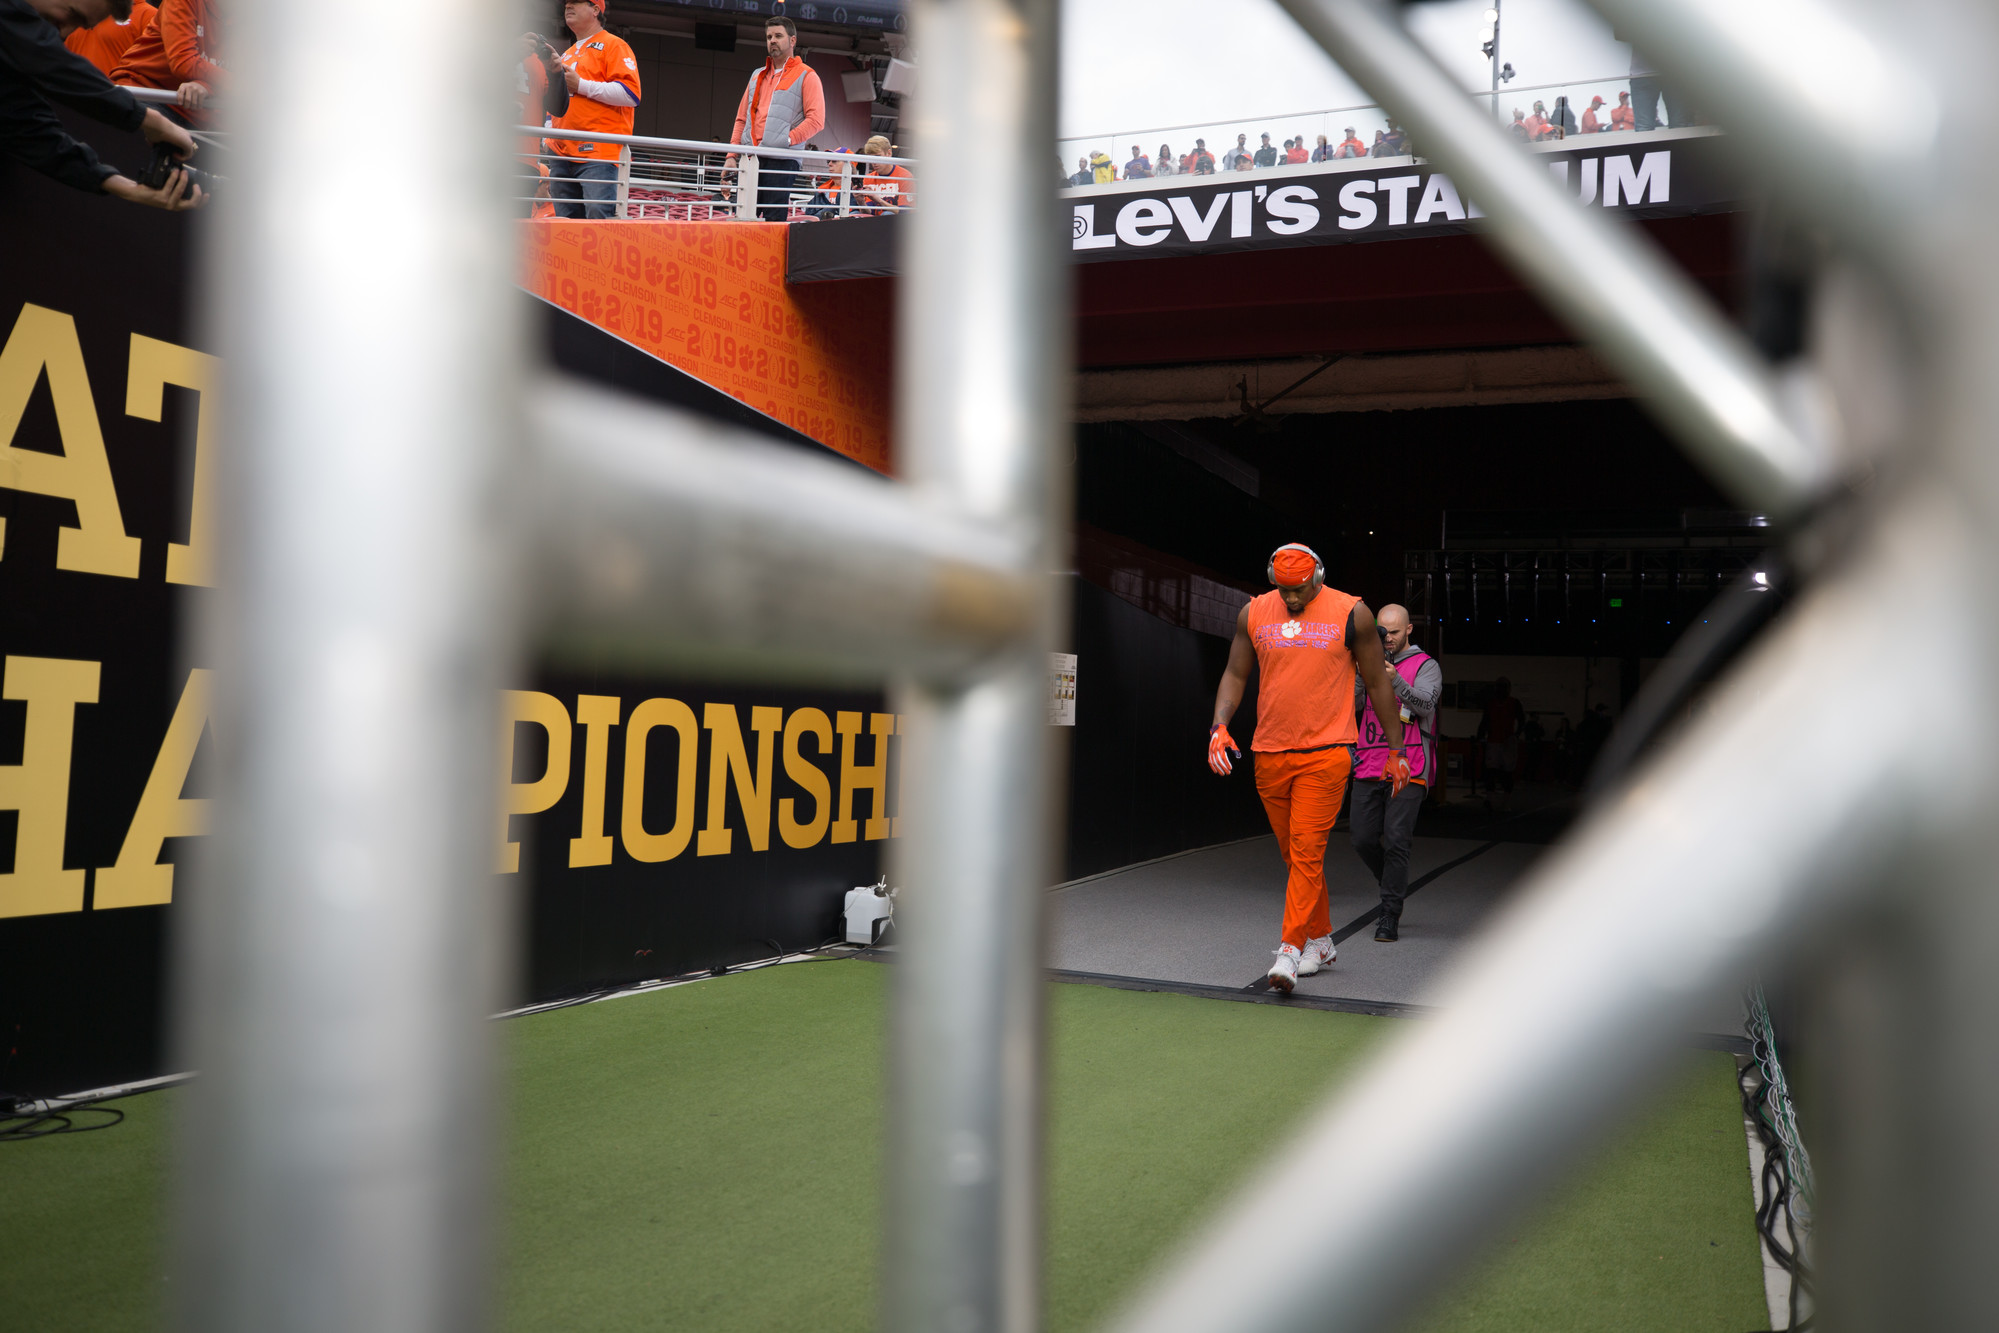 Clemson players enter the field to warm up at Levi's Stadium in Santa Clara, California, on Monday, Jan. 7 before the CFP National Championship game between Clemson and Alabama.